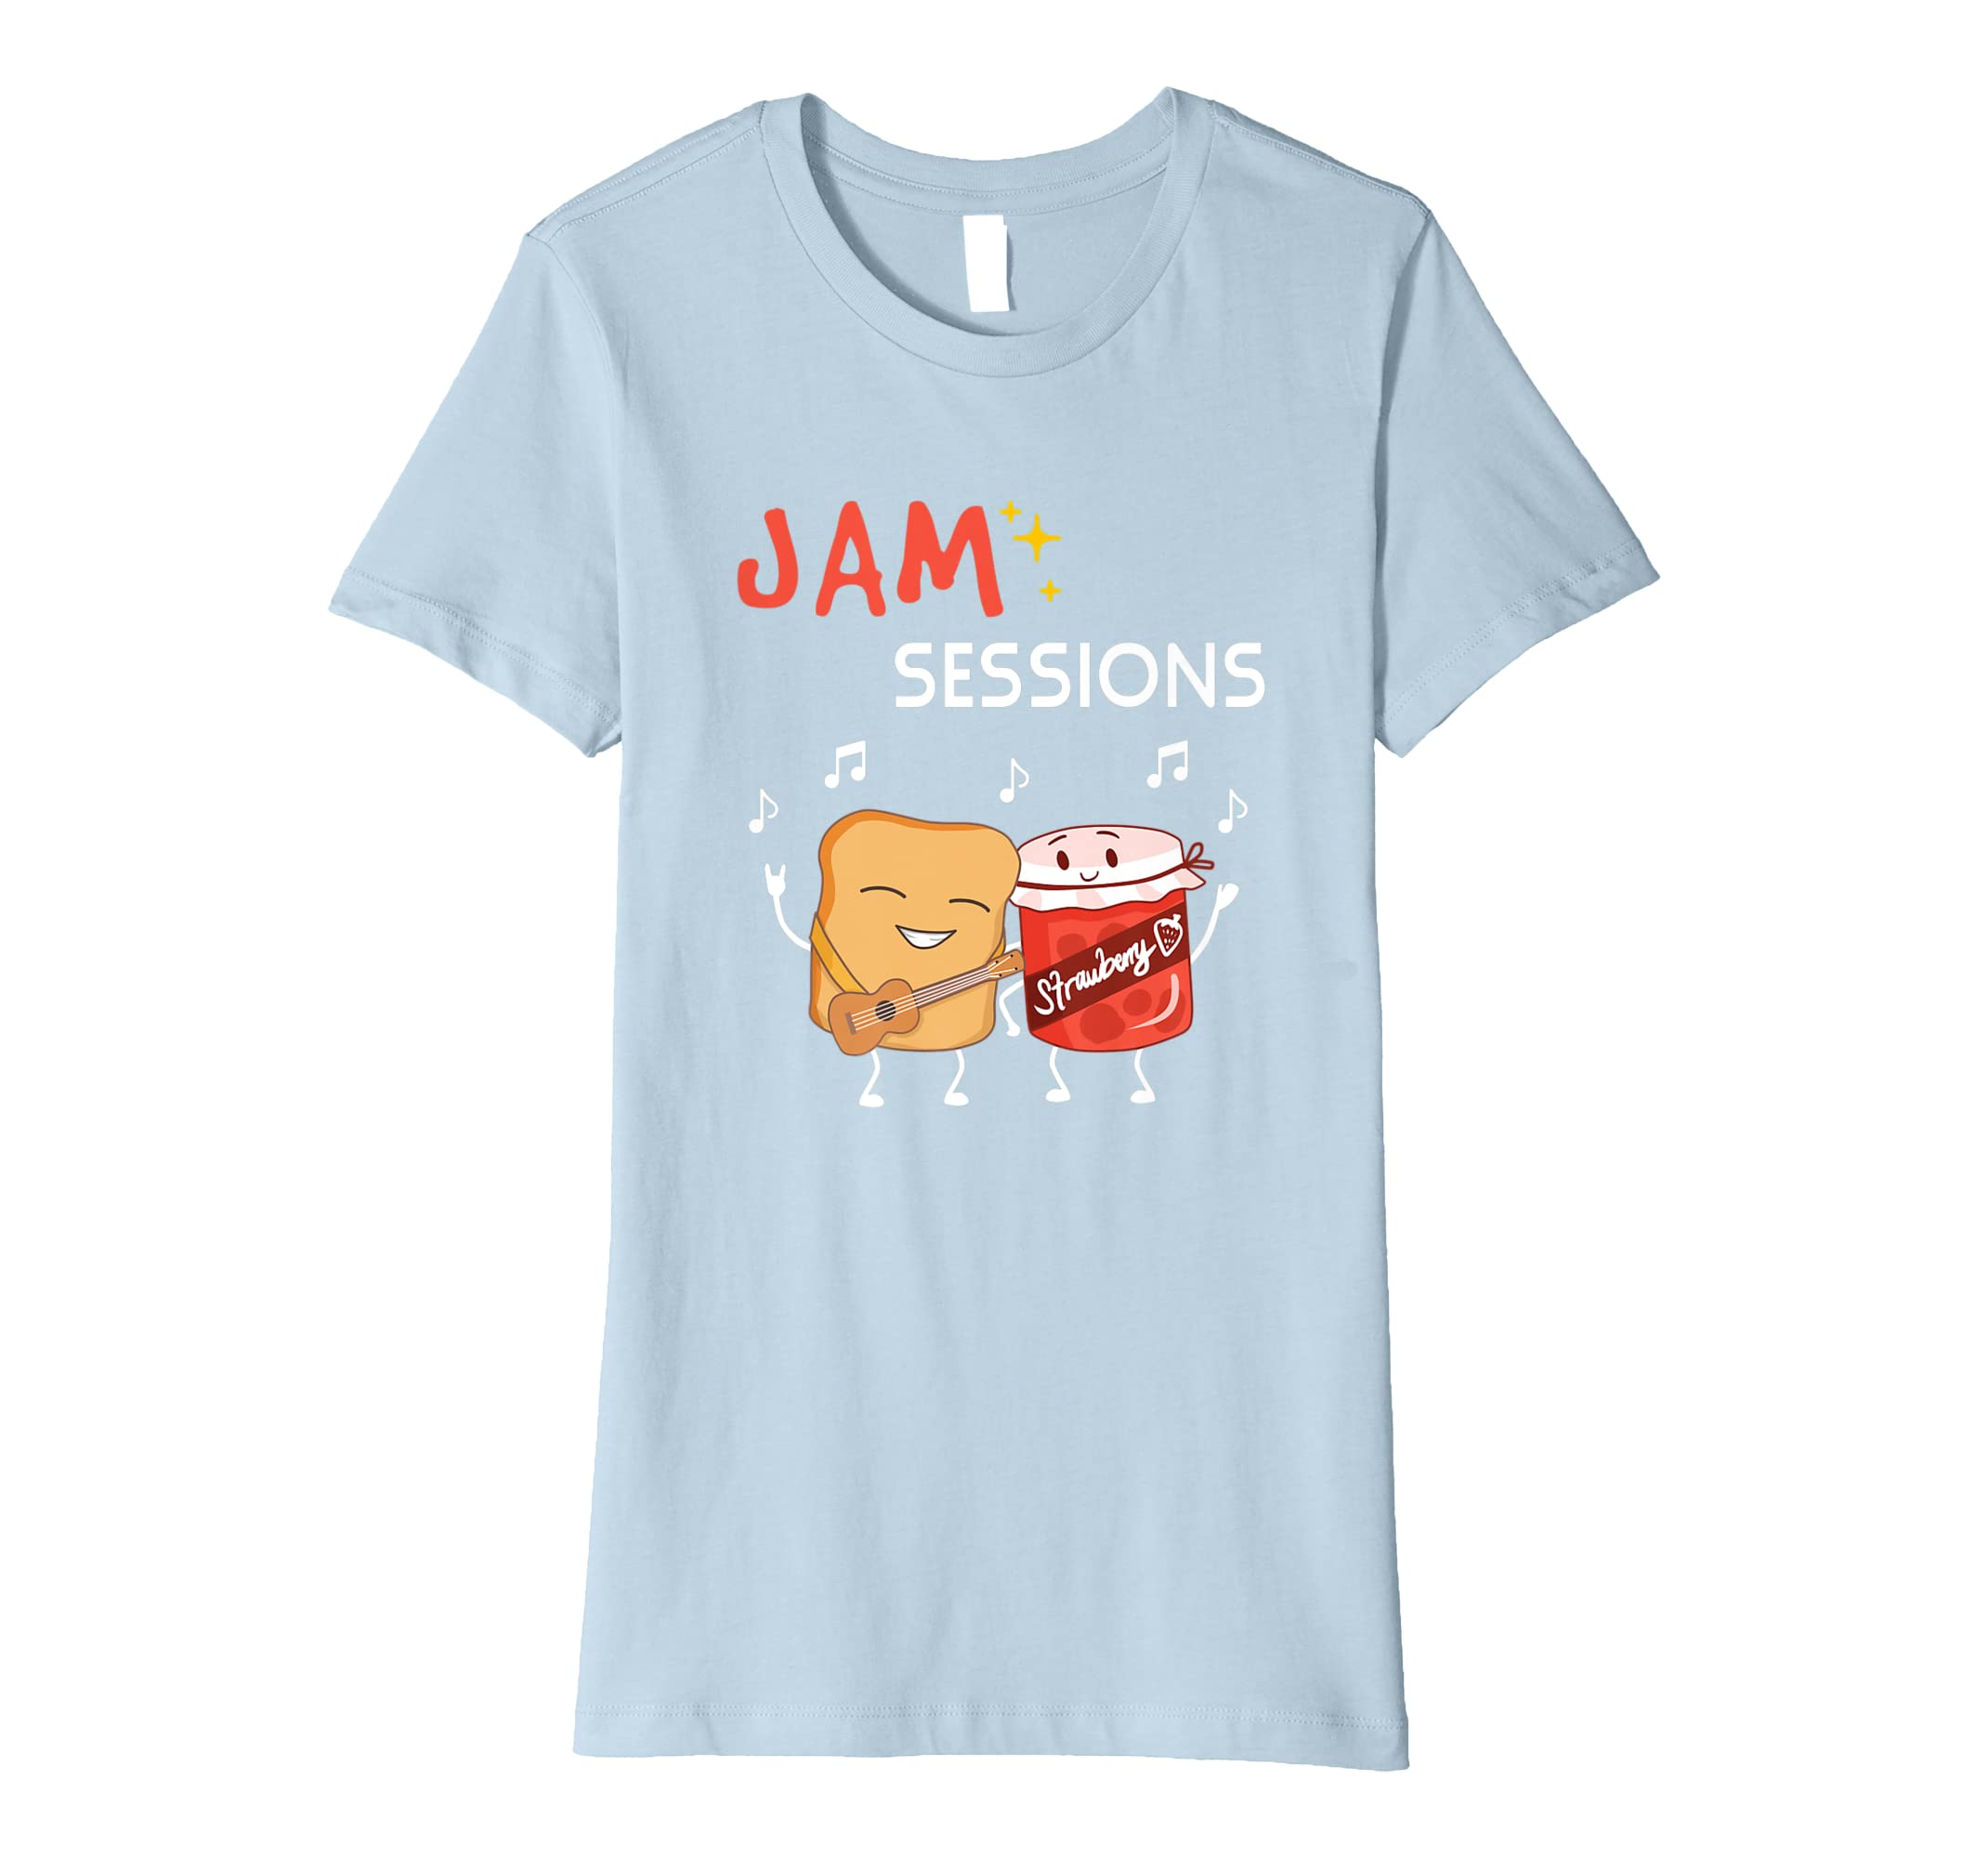 68d235db Amazon.com: Jam Session Funny Peanut Butter Jelly Music Cute Pun T Shirt:  Clothing